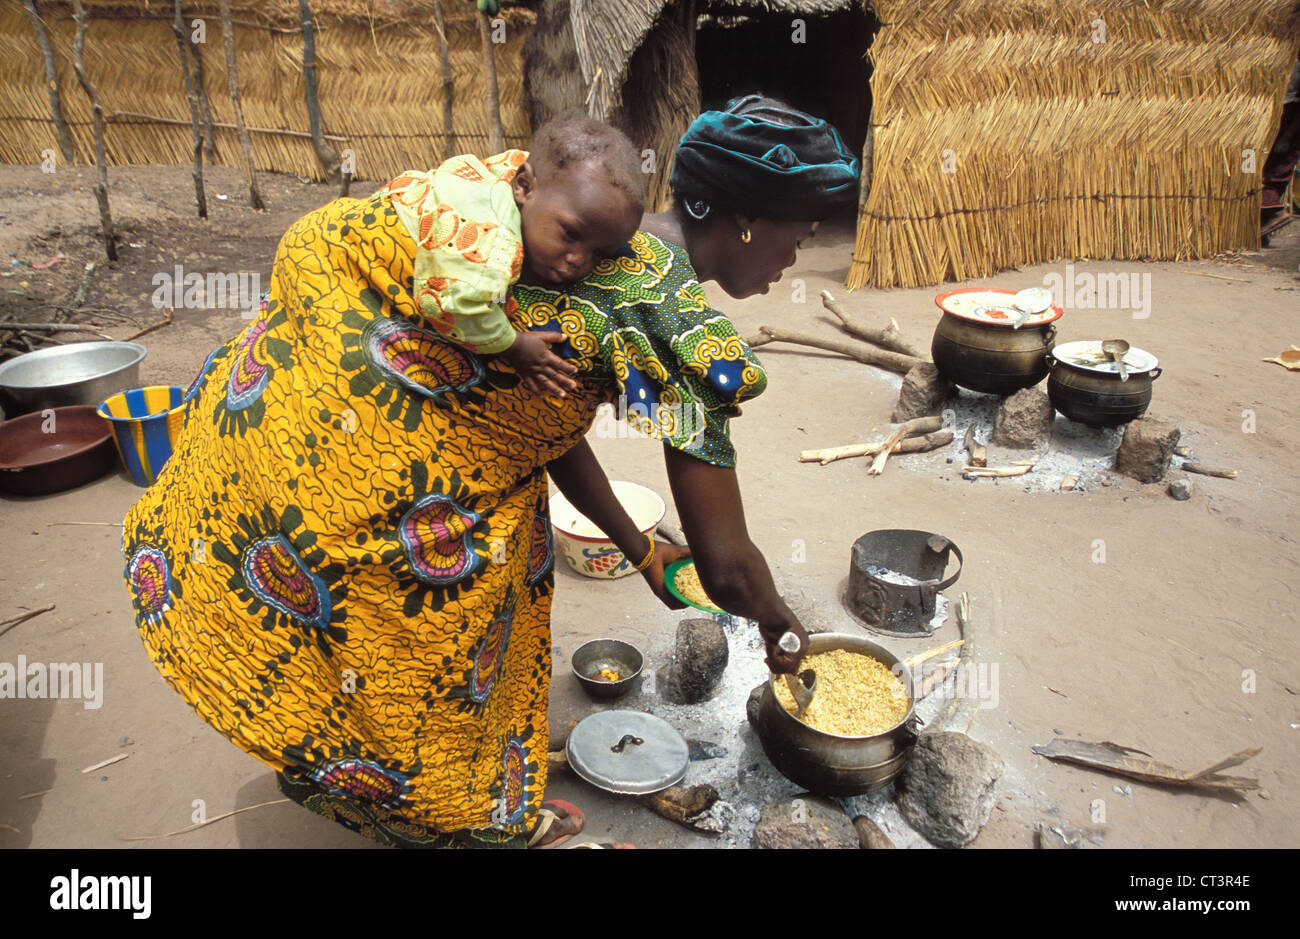 AFRICA, FOOD - Stock Image